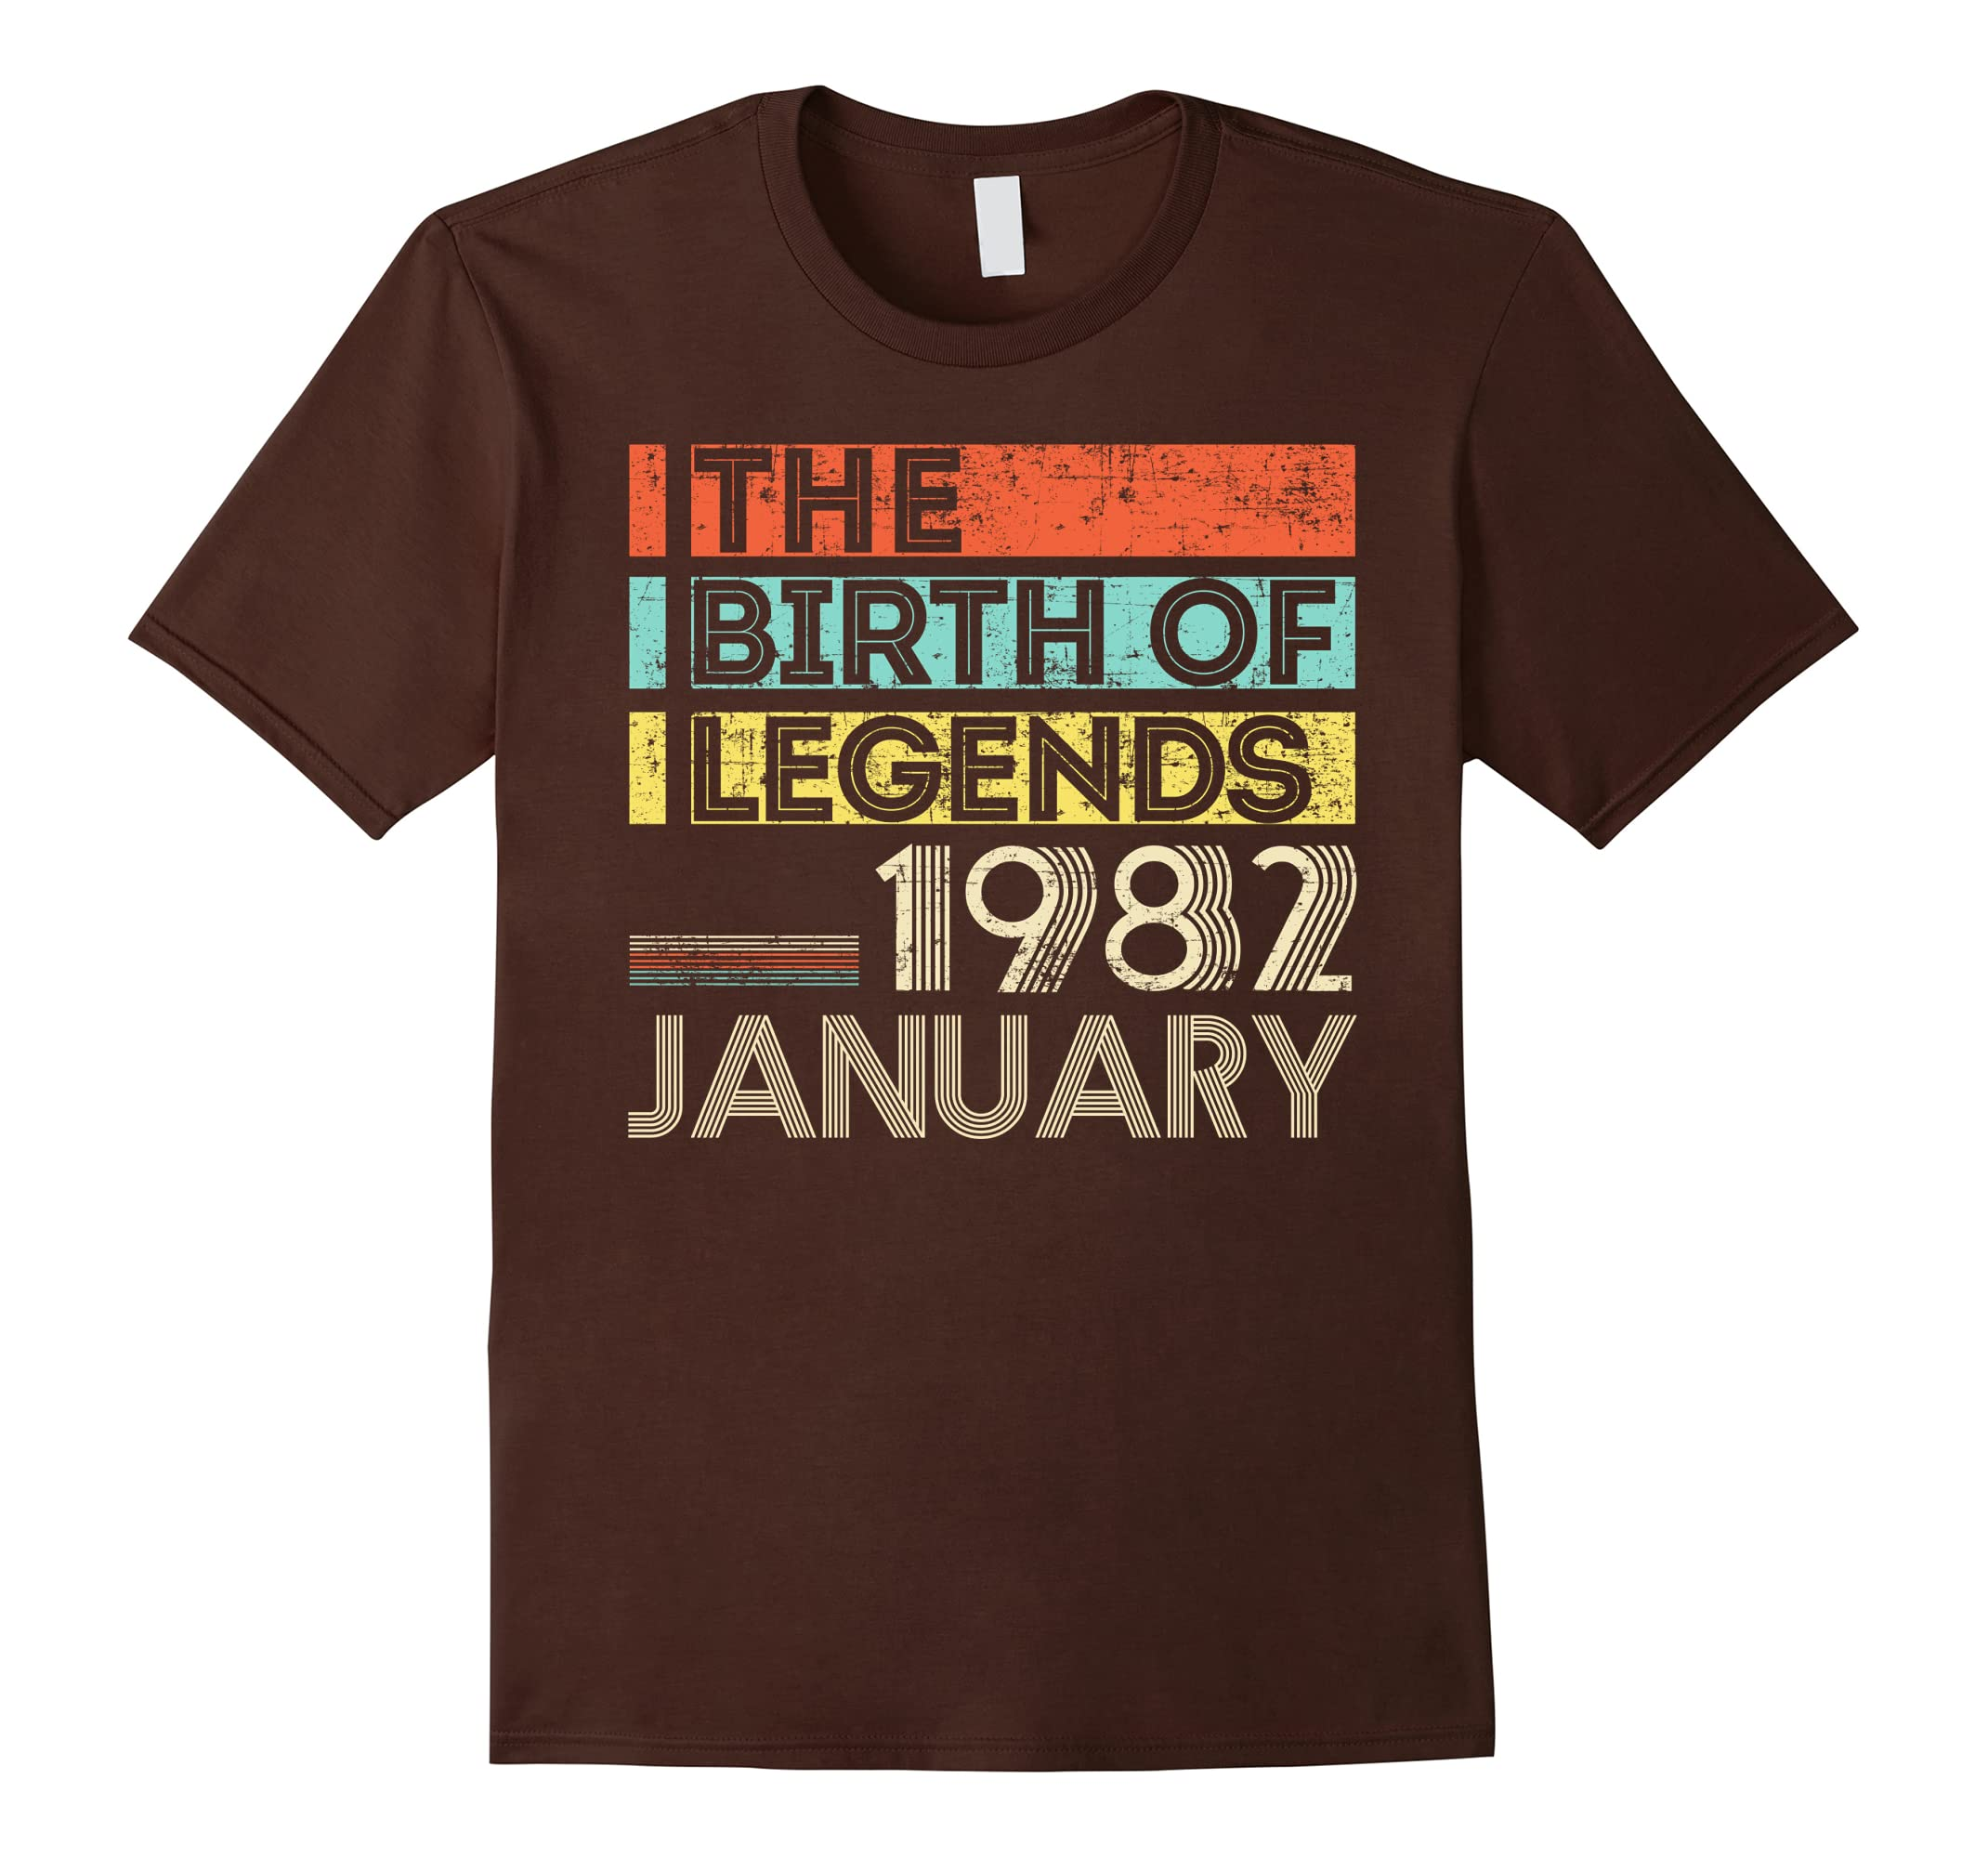 1982 JANUARY The Birth Of Legends 36 Yrs Years Old Awesome-RT